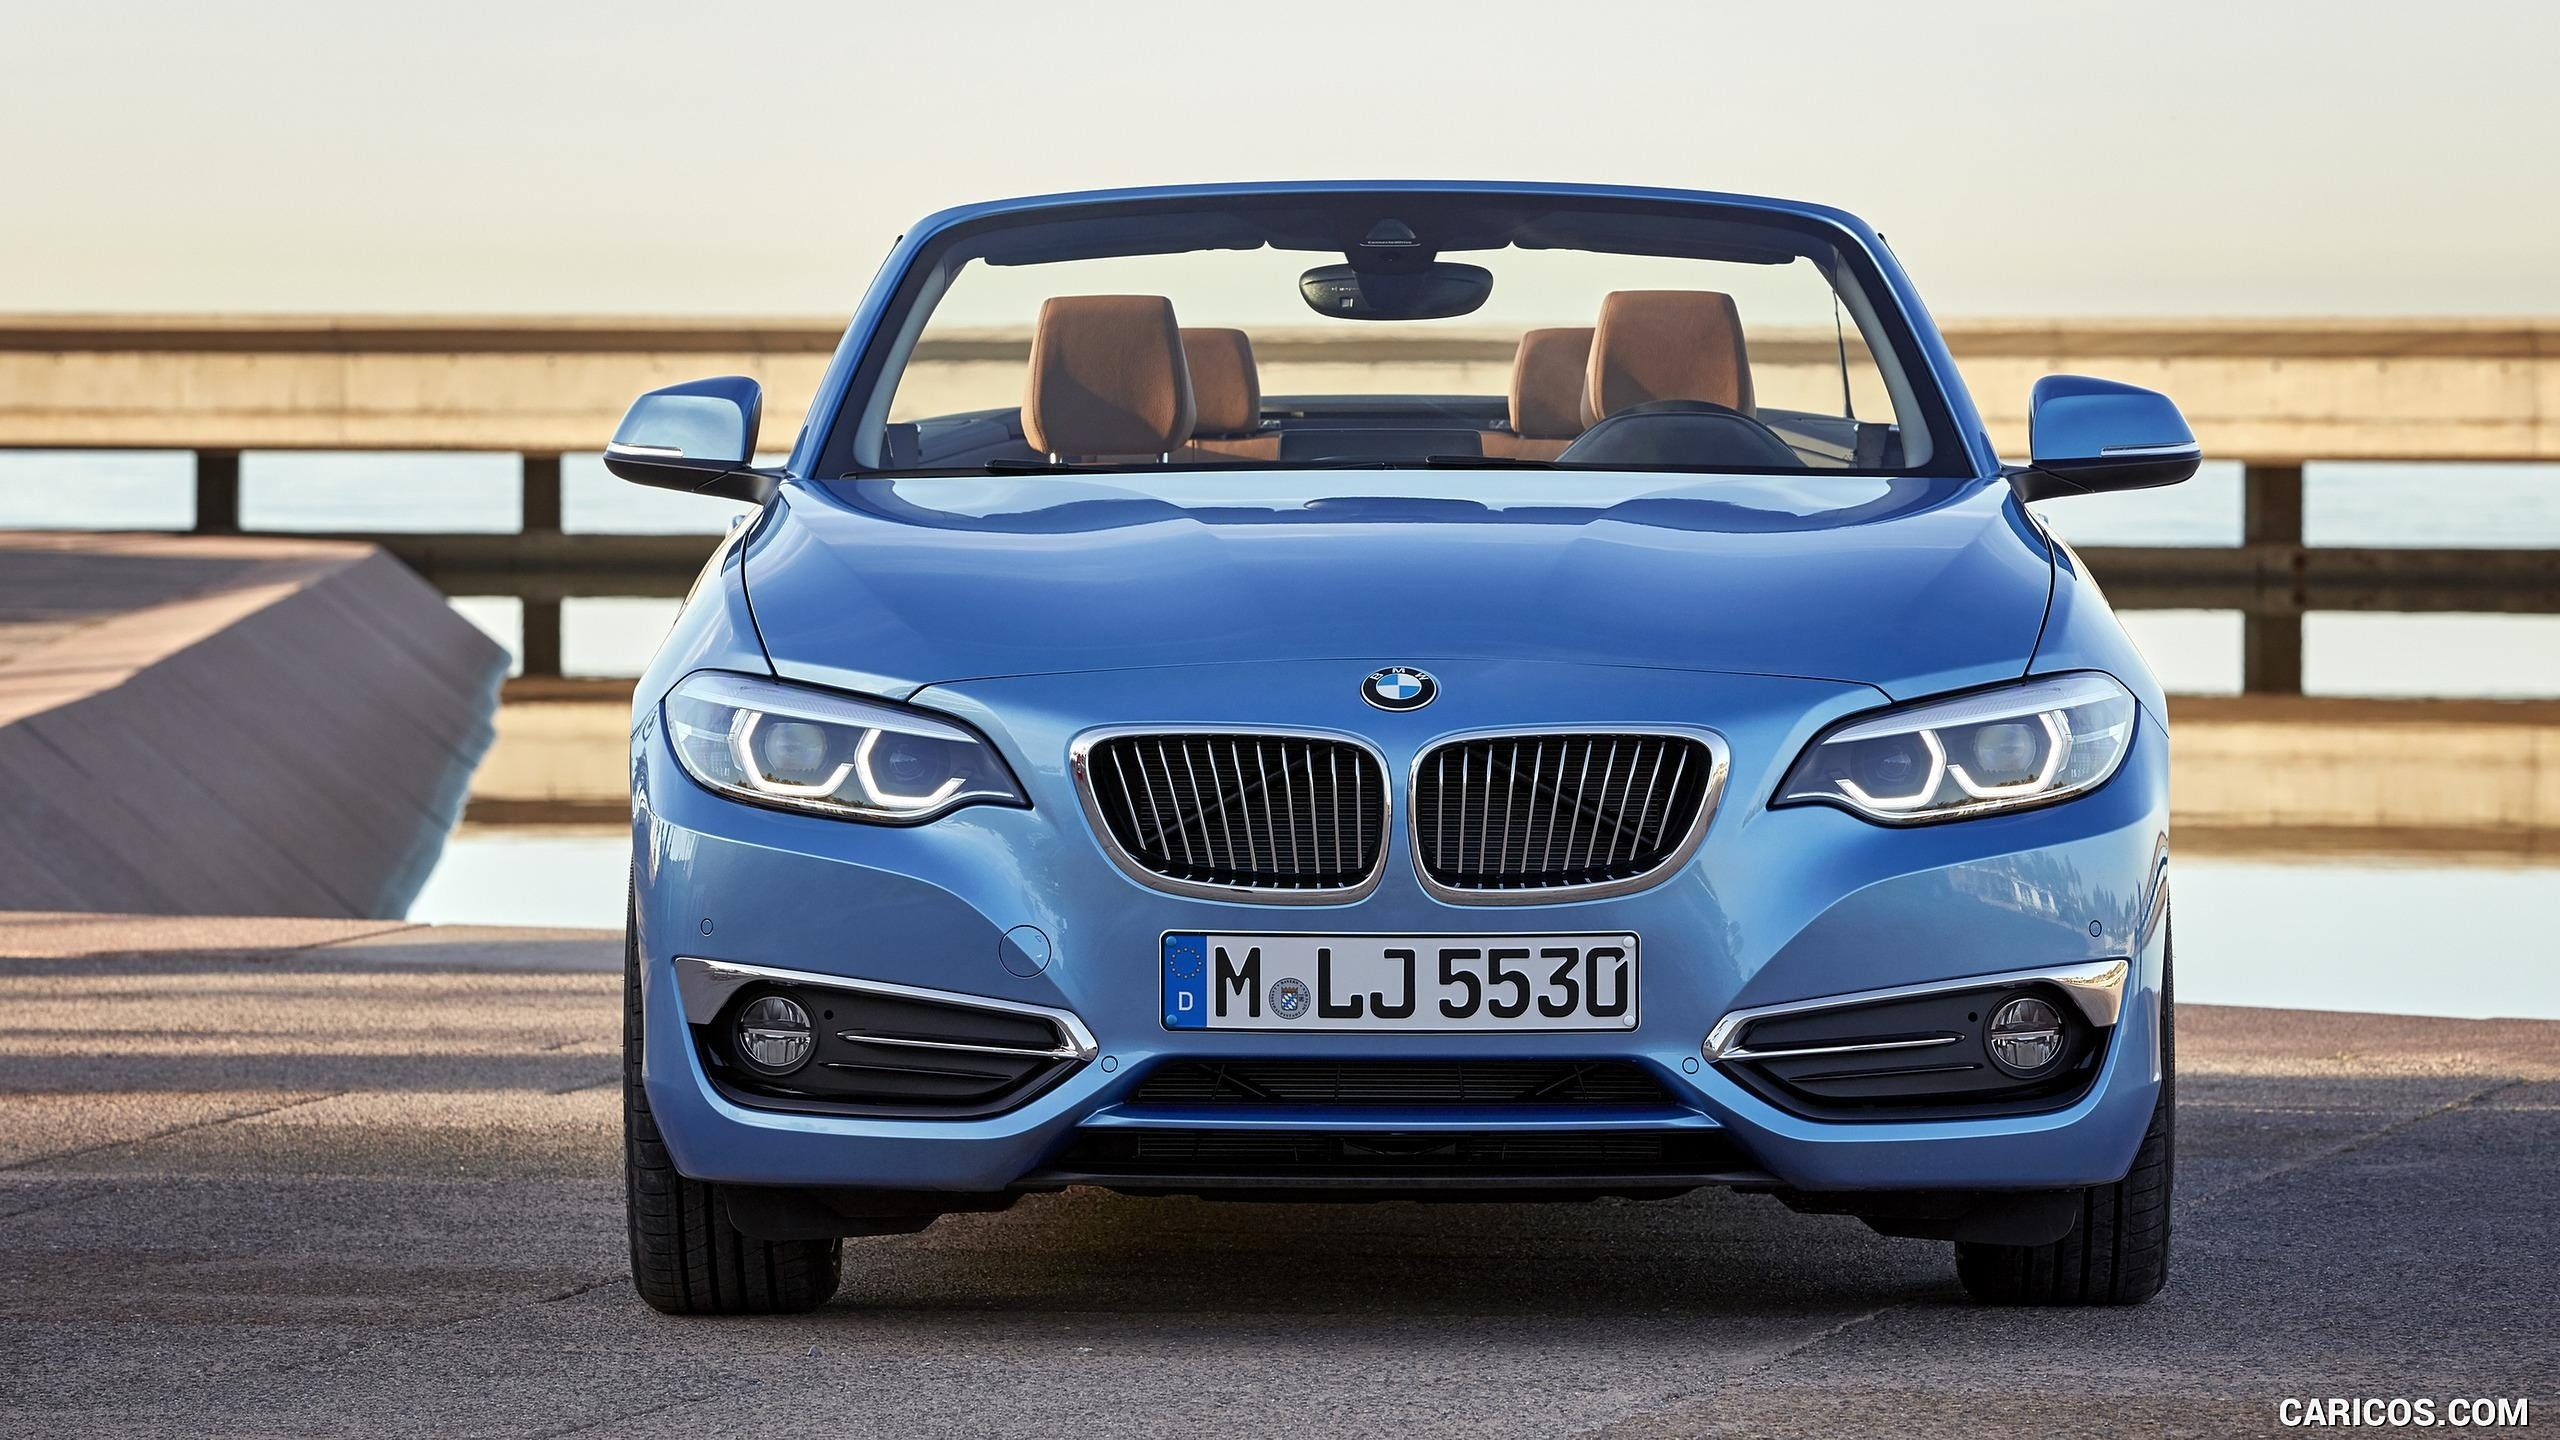 71 The Best 2020 BMW 220D Xdrive Ratings